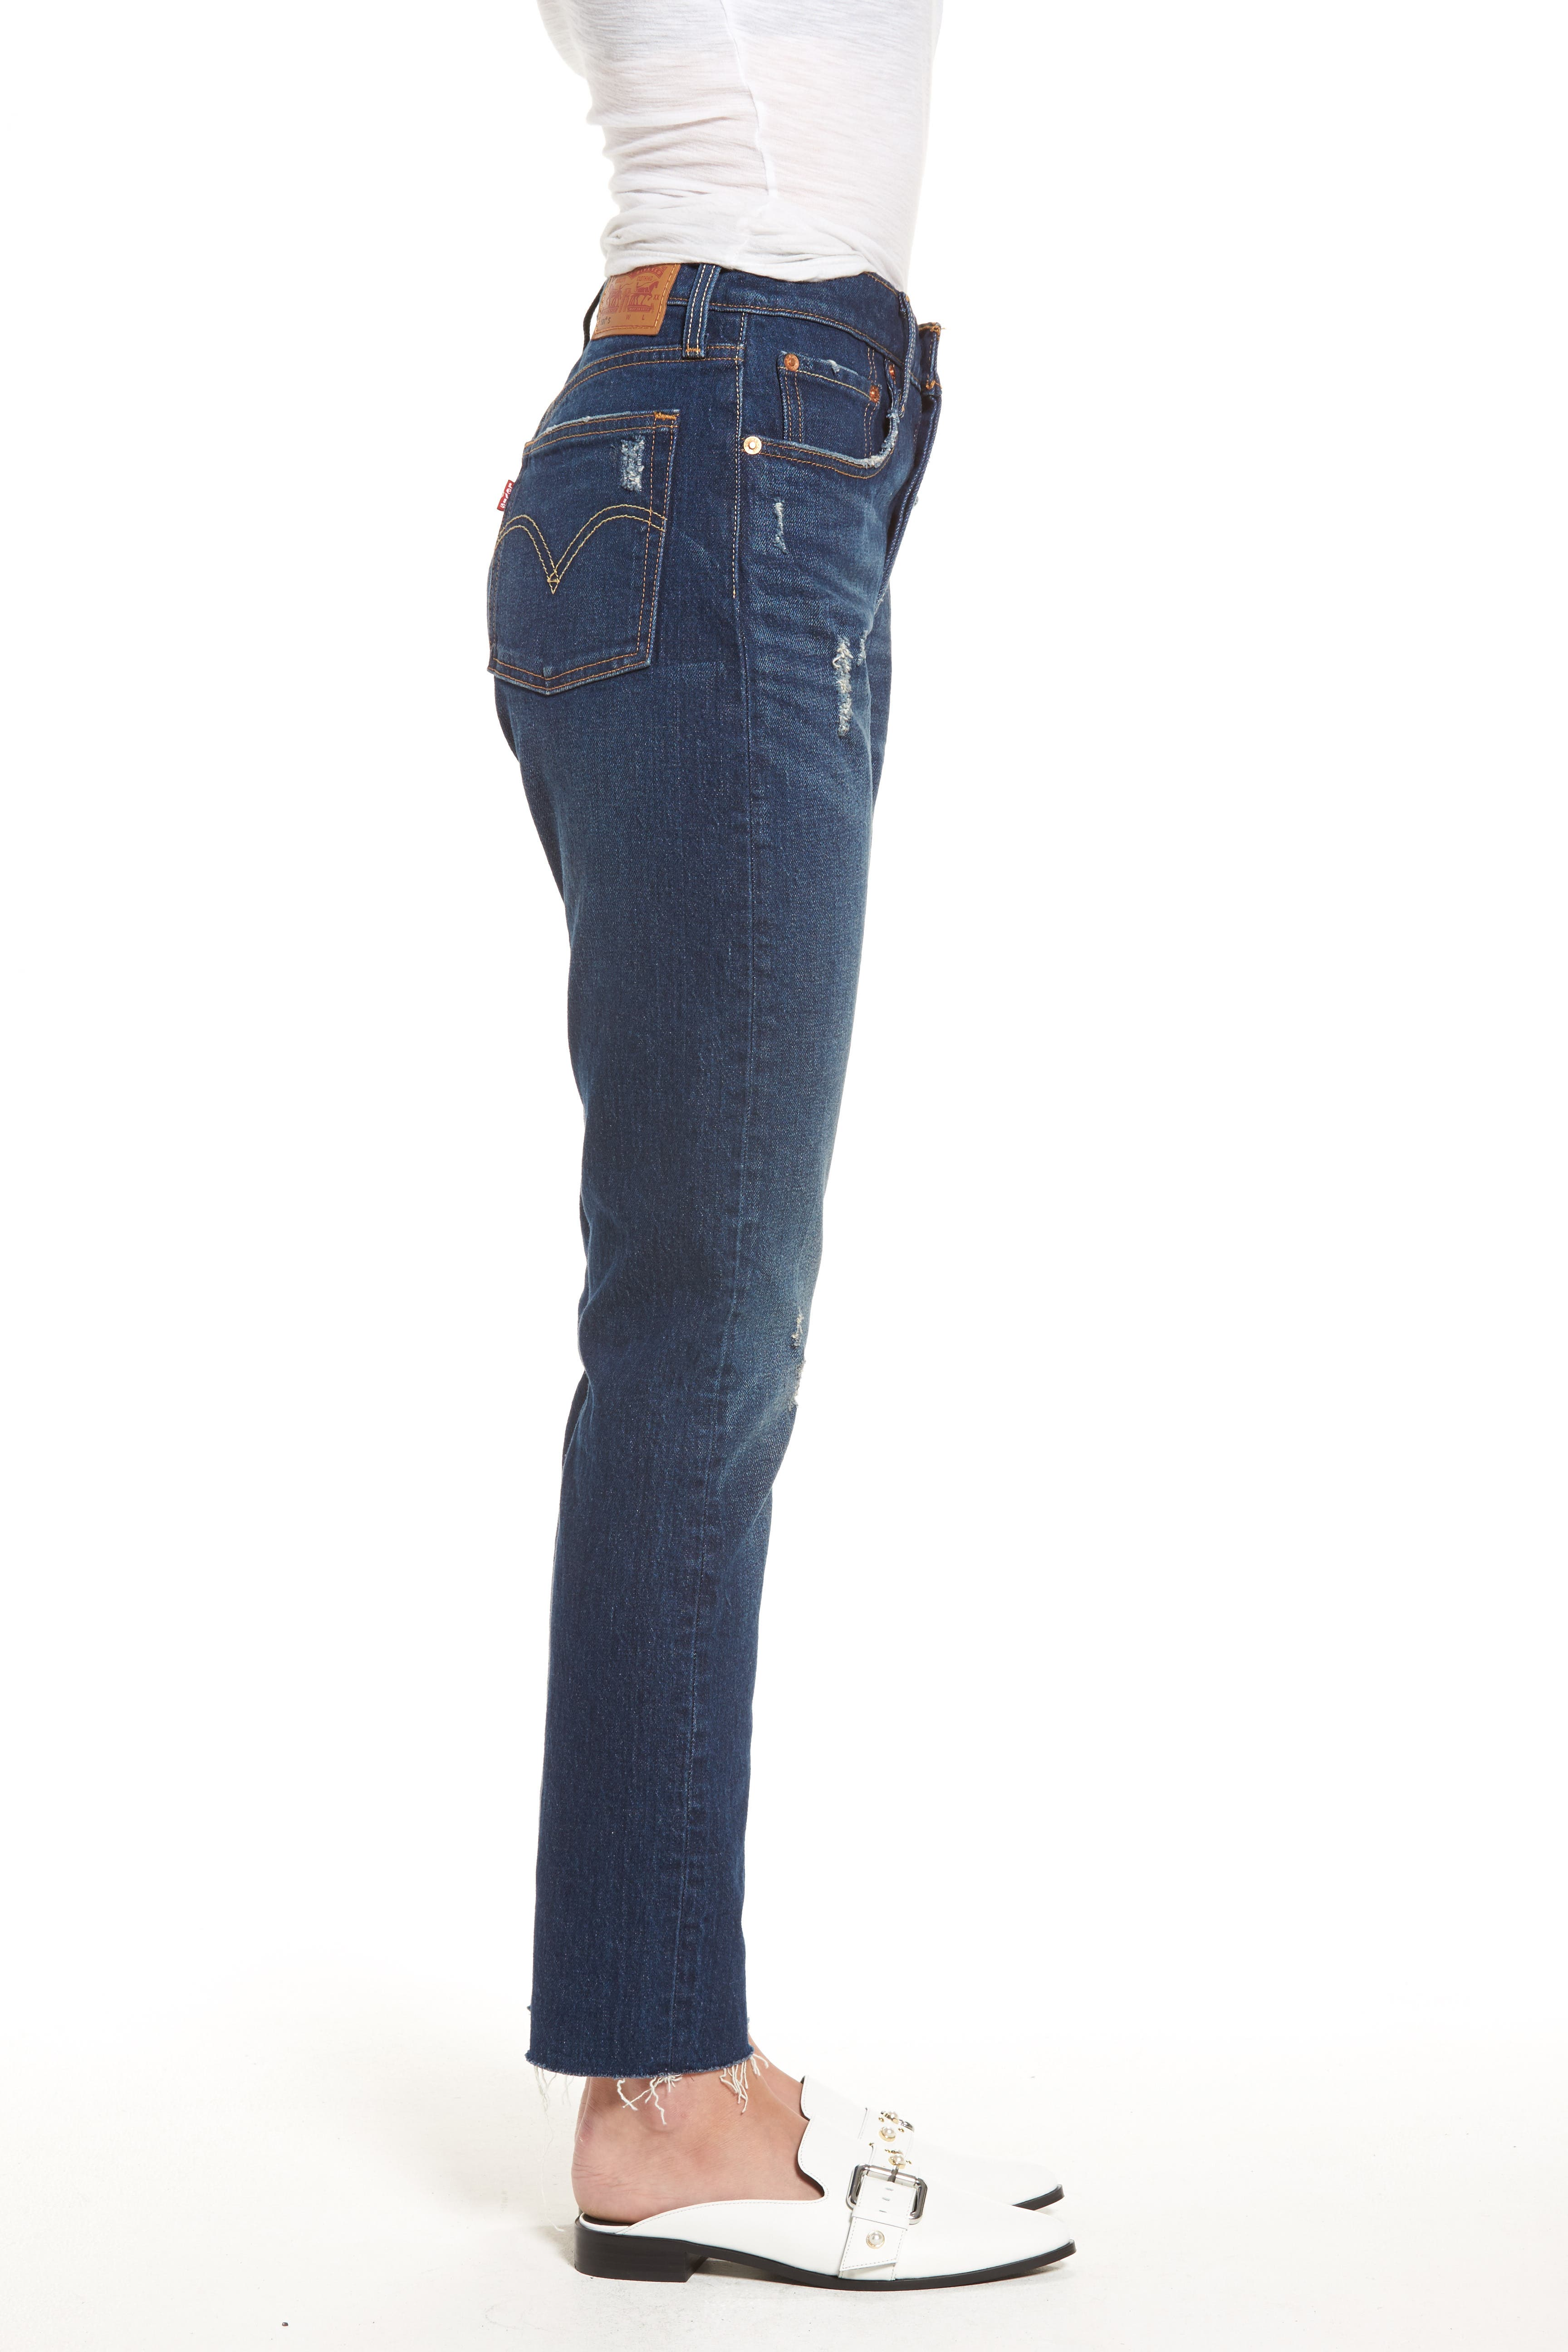 Levis<sup>®</sup> 501 Raw Hem Skinny Jeans,                             Alternate thumbnail 3, color,